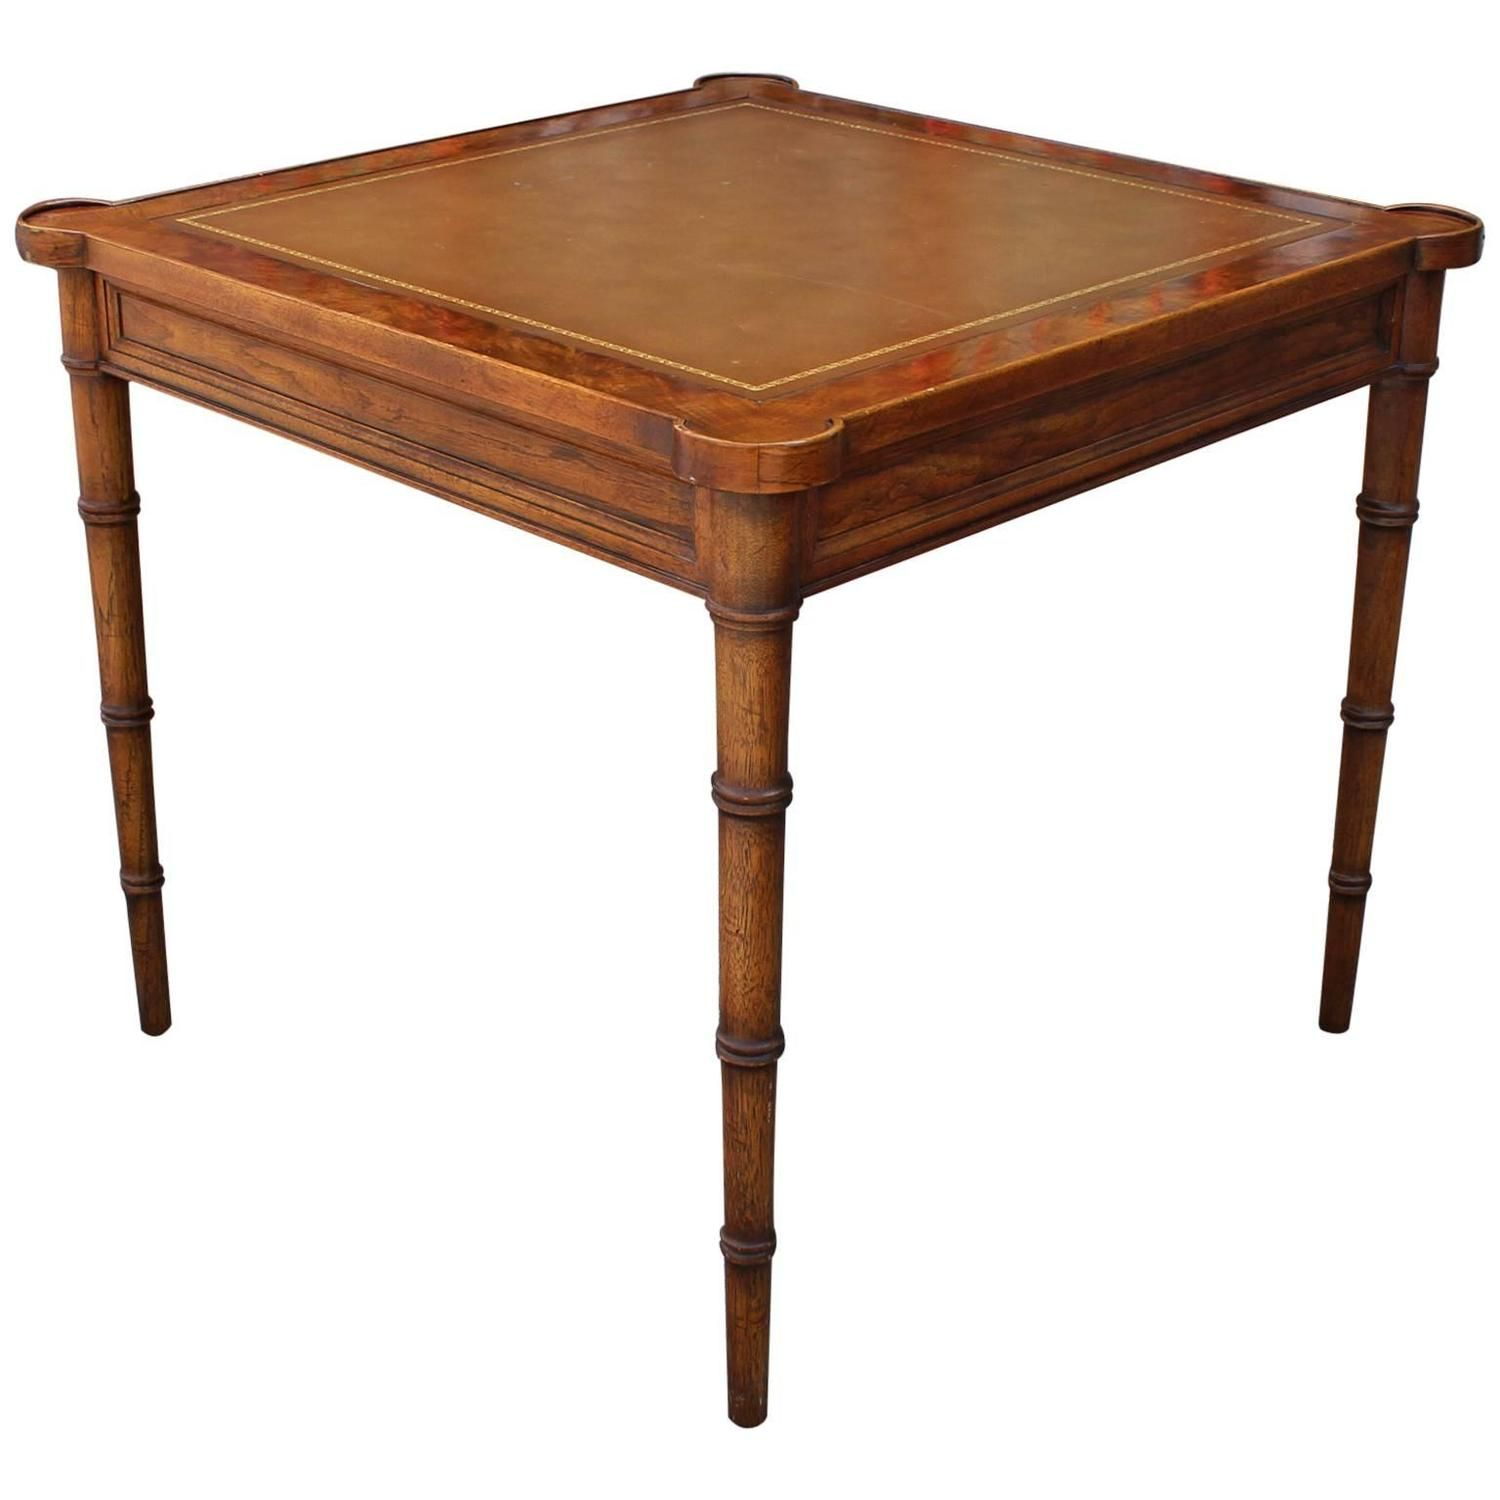 Faux Bamboo And Leather Burl Square Card Table By Drexel Faux Bamboo Square Card Table Cards